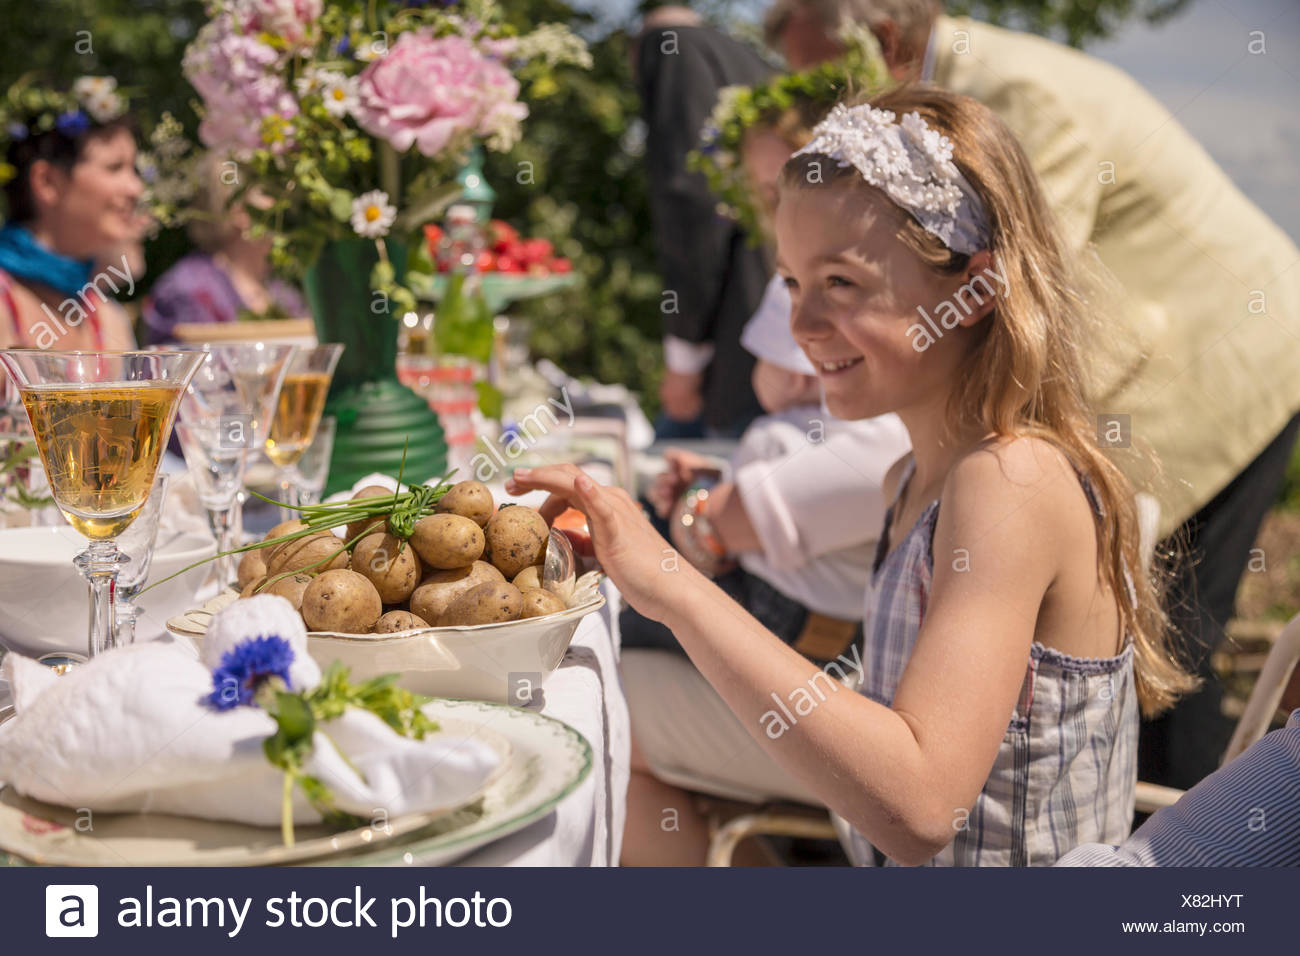 Sweden, Skane, Children (6-11 months, 8-9) celebrating traditional festival - Stock Image